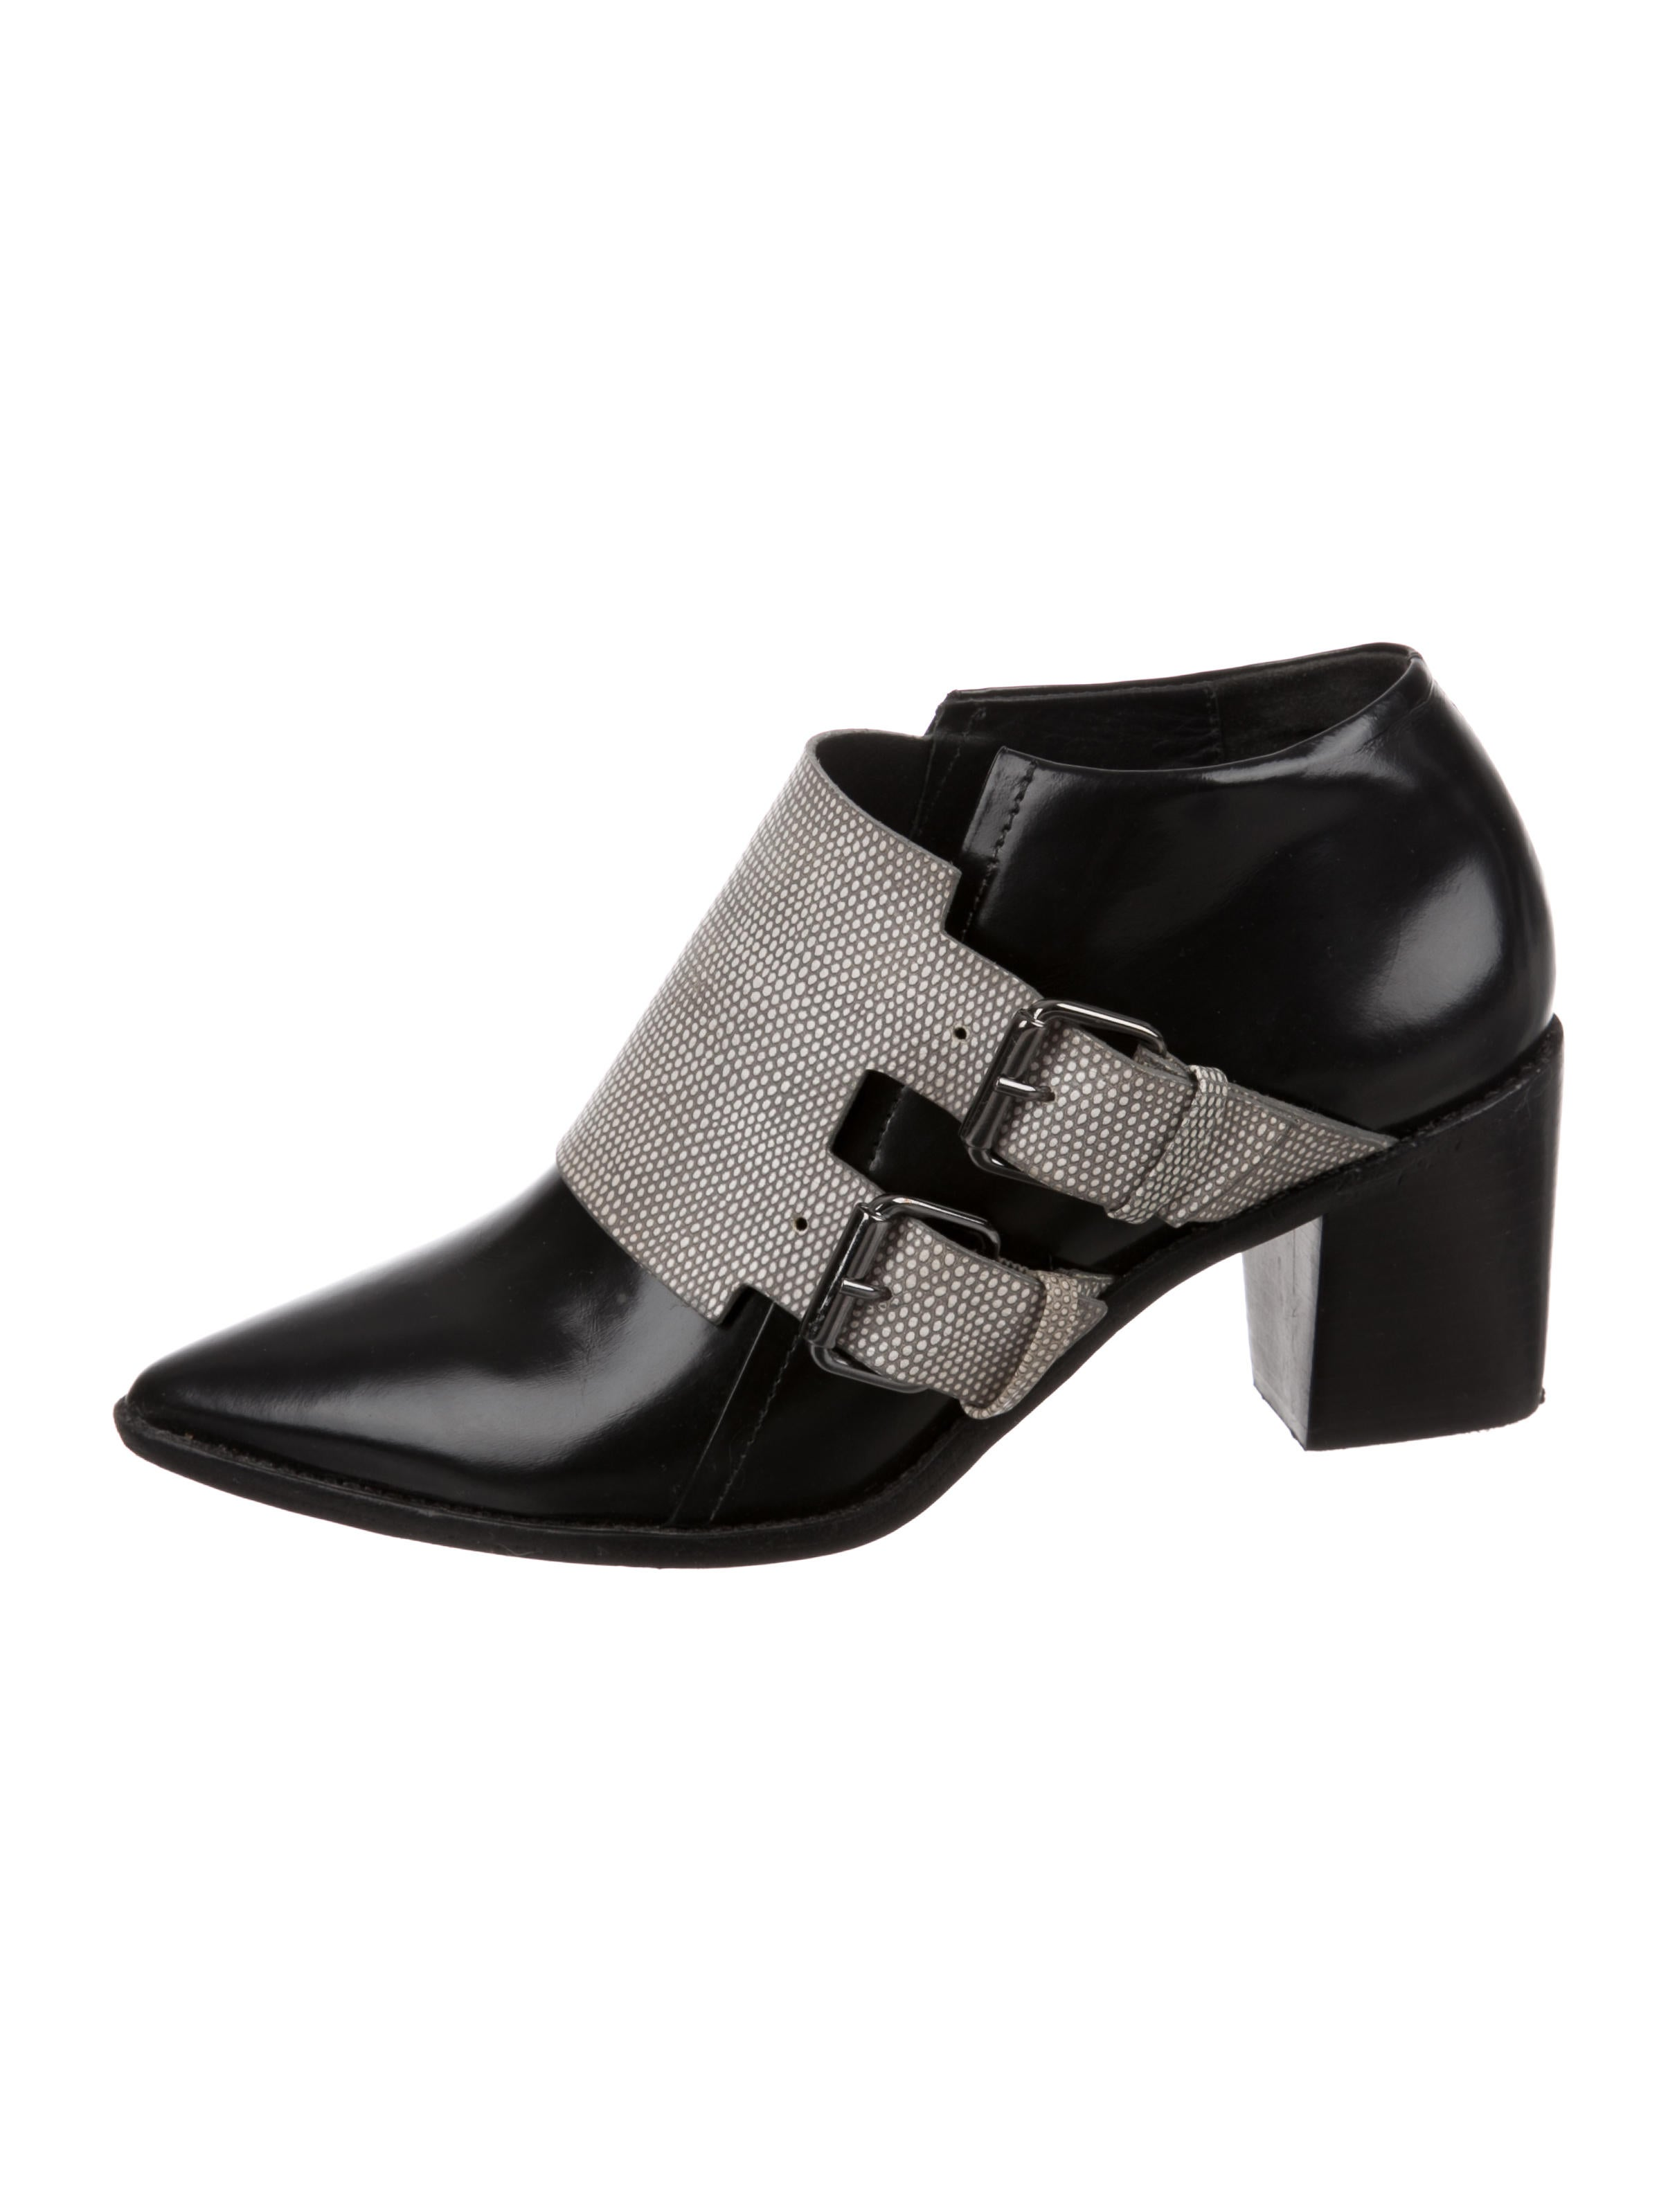 Tibi Embossed Pointed-Toe Booties original cheap price cheap sale lowest price latest collections online cheap sale best sale fashion Style dsAU5SK5sL